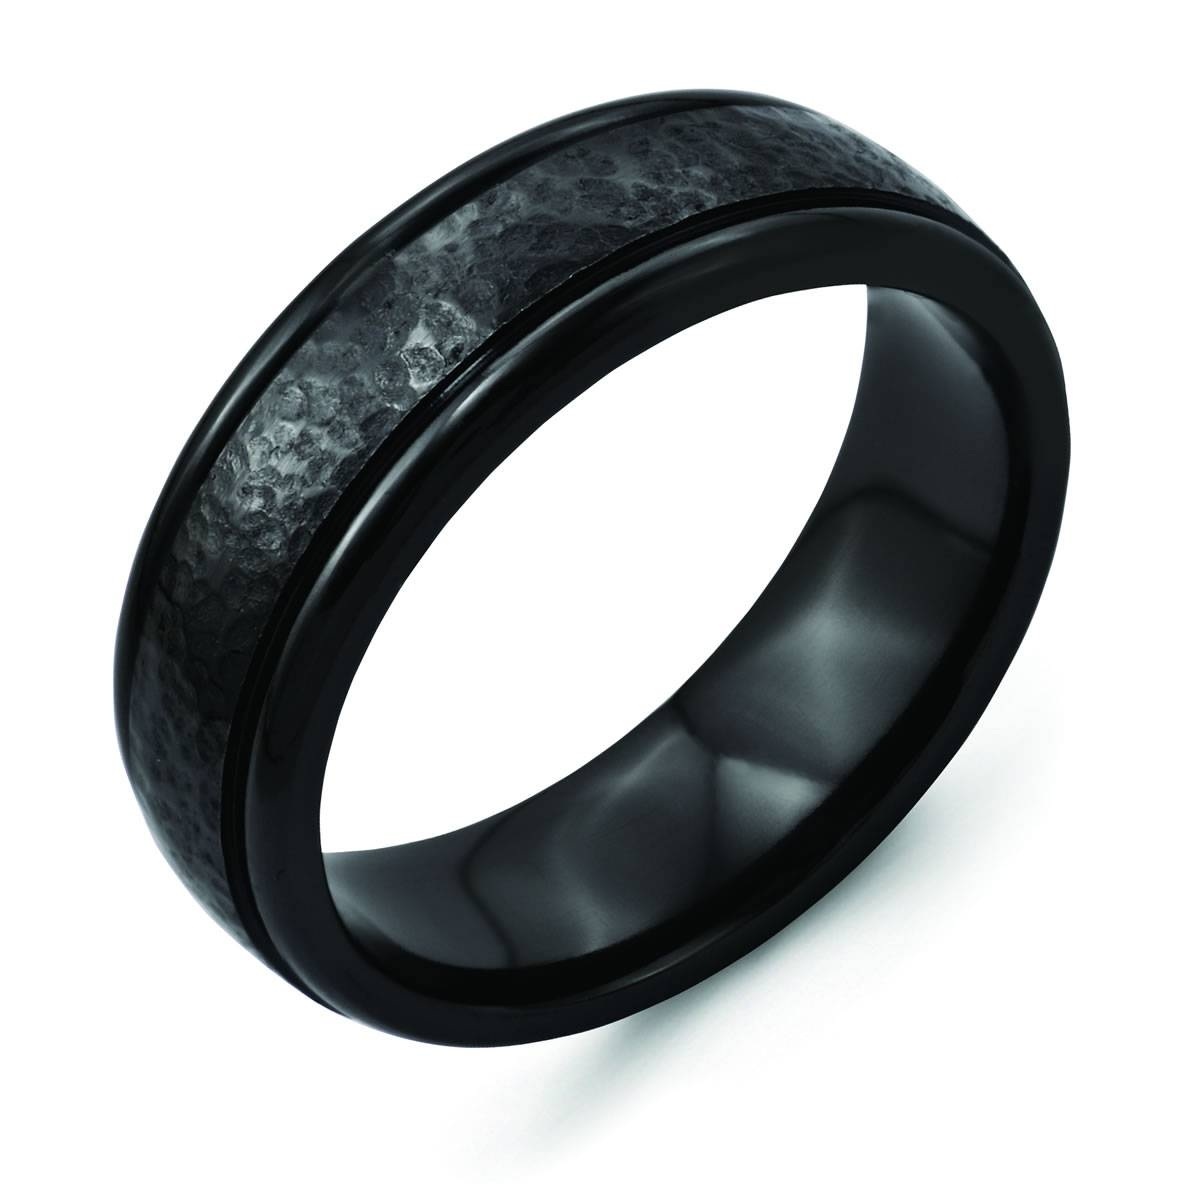 Titanium Black Ti Hammered Ridged Edge 7Mm Brushed Men's Wedding With Hammered Wedding Bands For Men (Gallery 13 of 15)